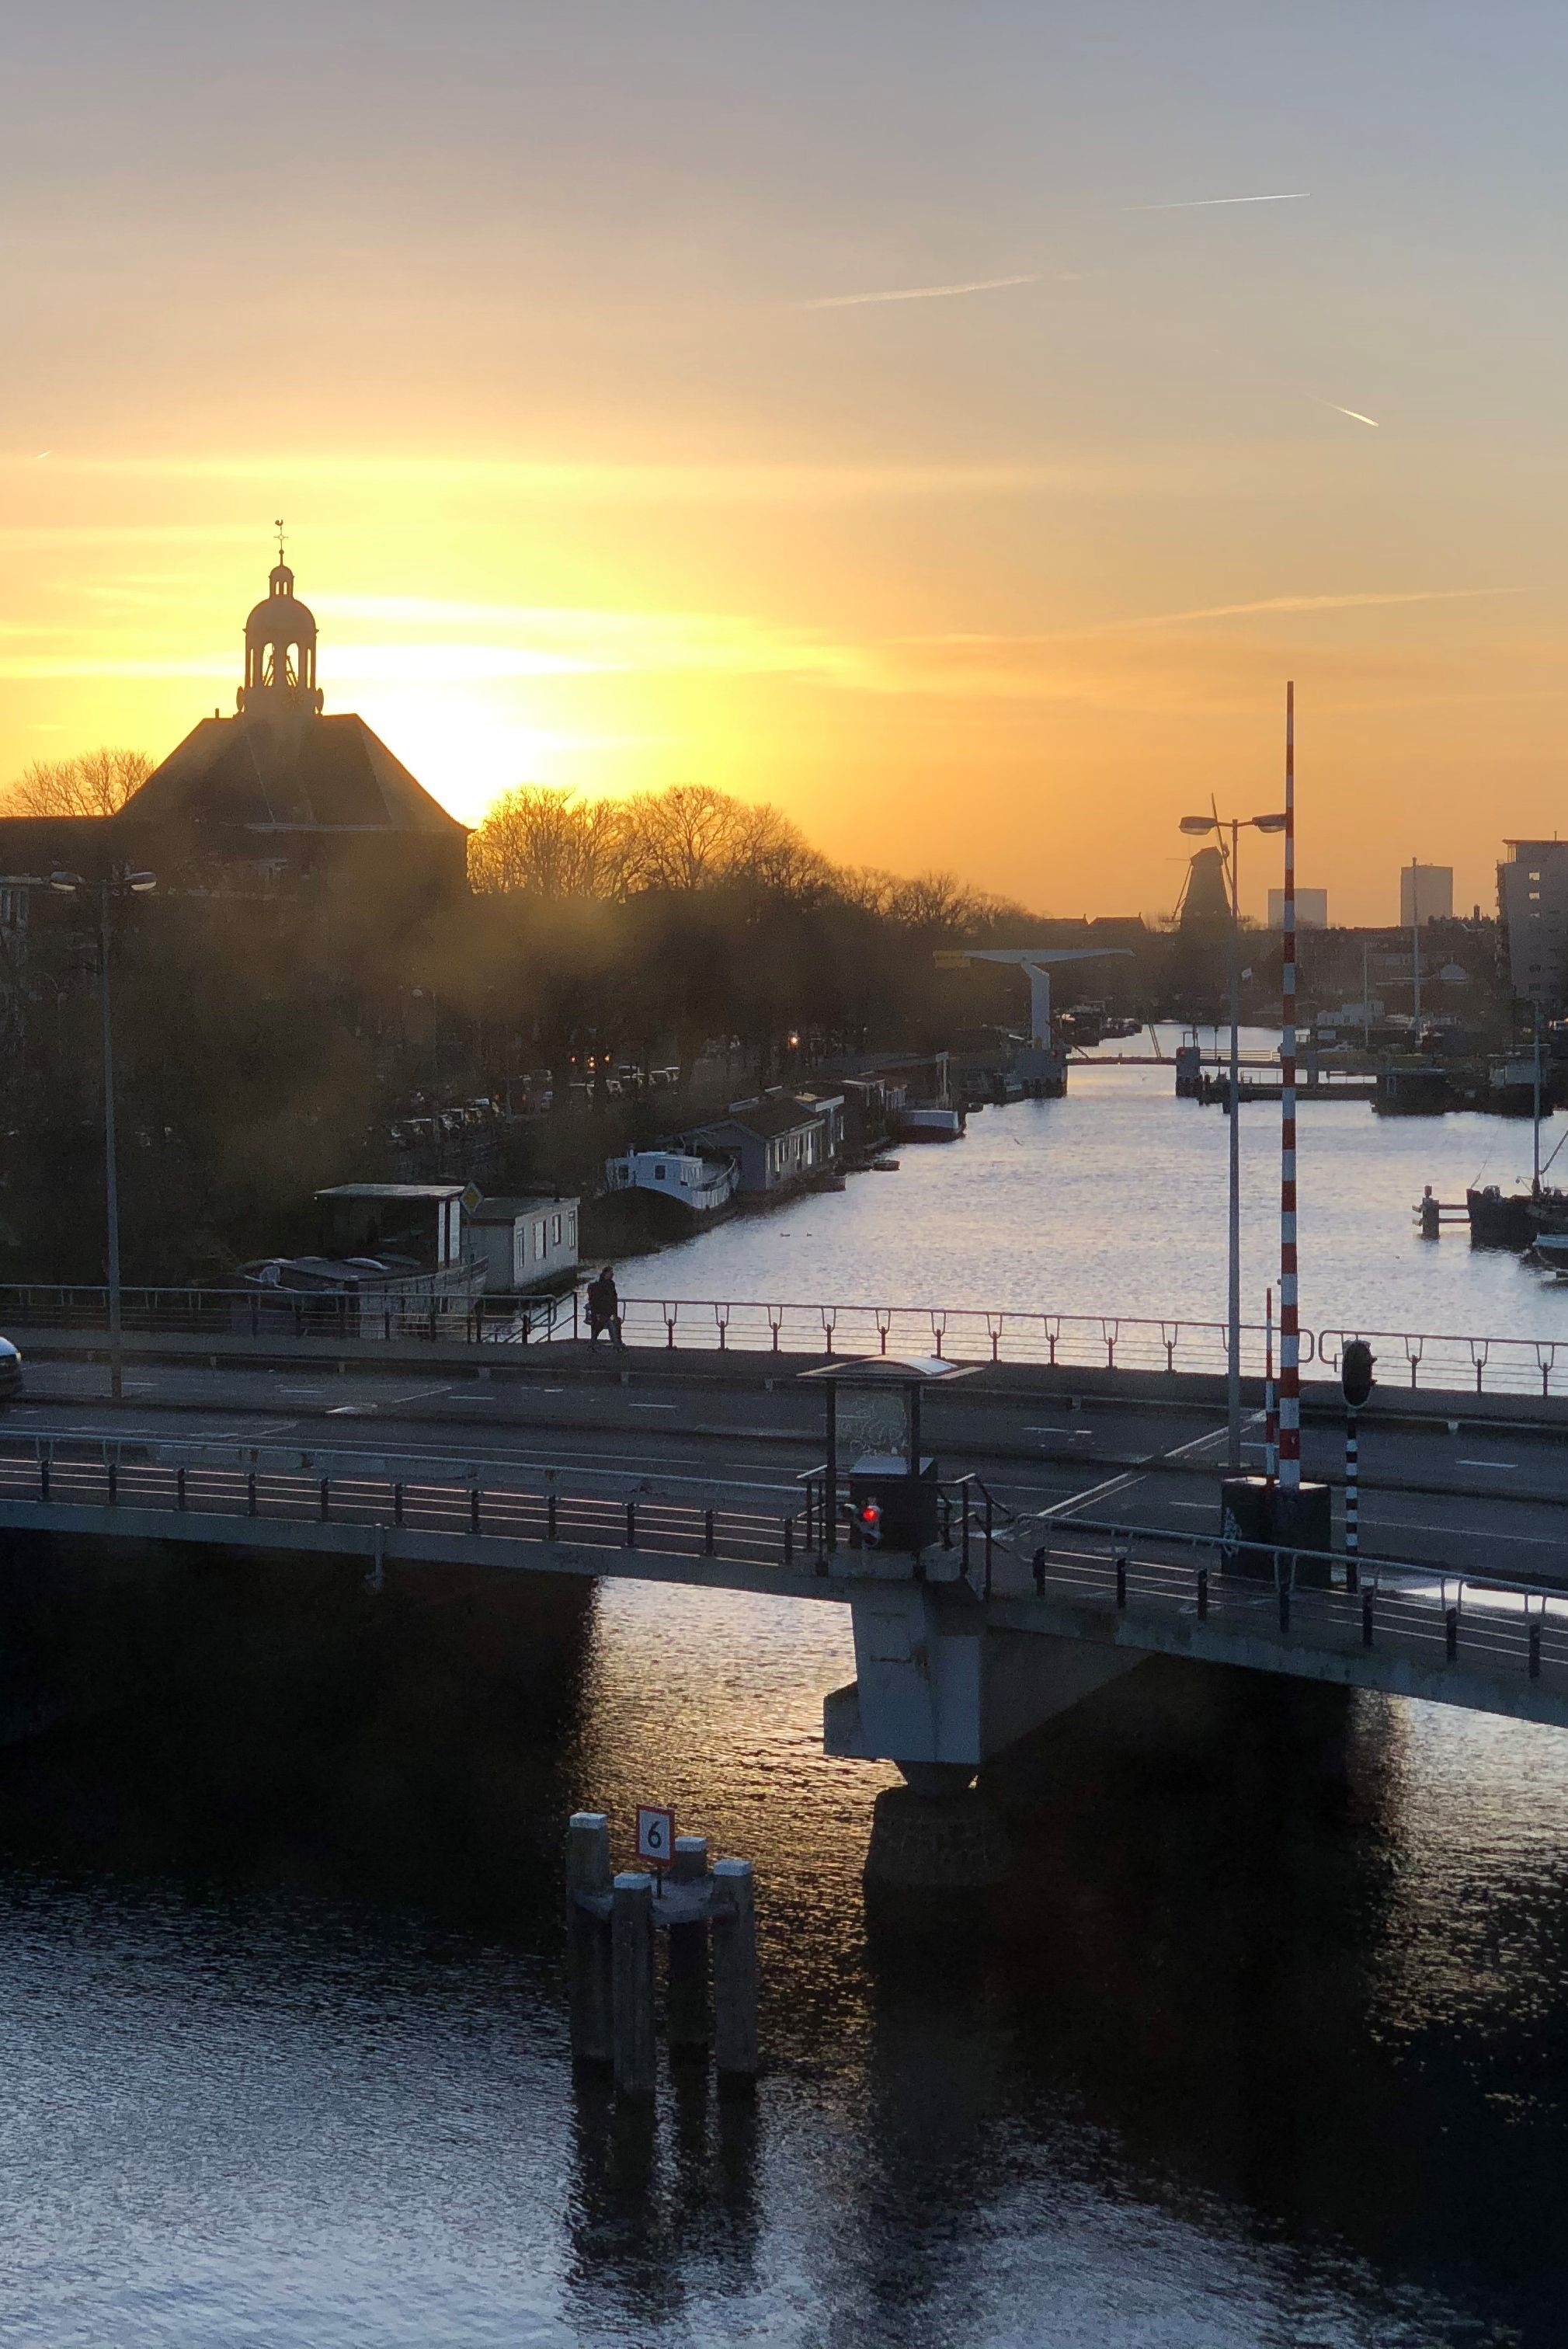 Imagine waking up to views like this! At bridge house 202 - Kortjewantsbrug, you can. Book your spring or summer stay now via the link in this post.  Picture by Ed Krommenhoek.  #sweetshotel #amsterdam #hotel #hotels #traveltips #travelguide #travel #travelling #travellers #view #getaways #destinations #netherlands #holland #unique #unusual #trip #citytrip #europe #destination #visit #bridge #house #tinyhouse #brugwachtershuisje #kadijksplein